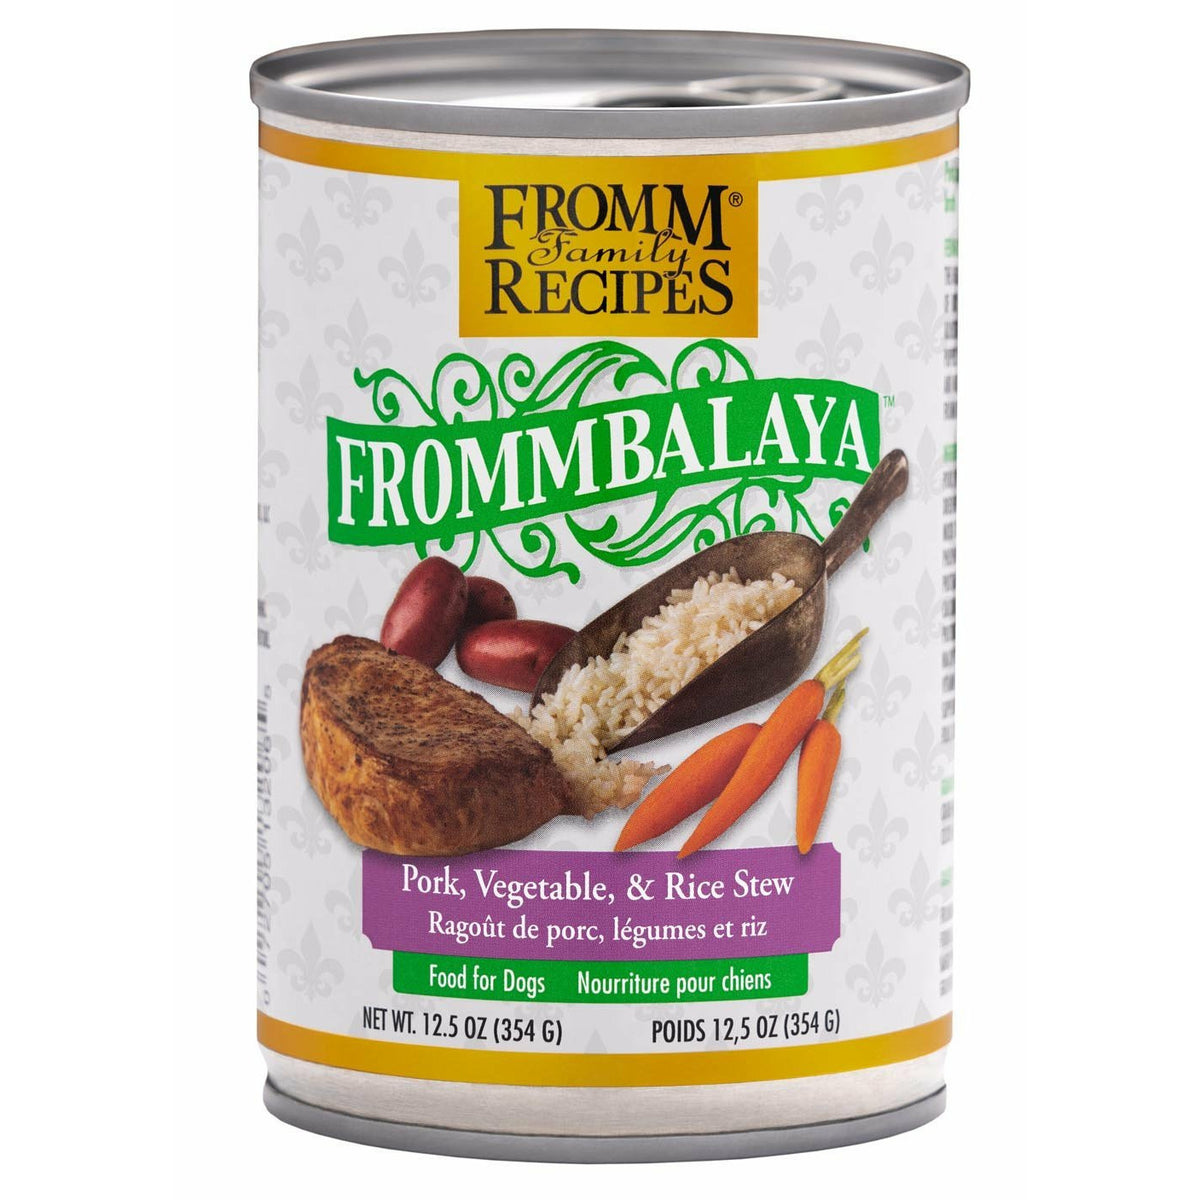 Fromm Family Recipes - Frommbalaya Pork, Vegetable, & Rice Stew - Canned Dog Food (354g)